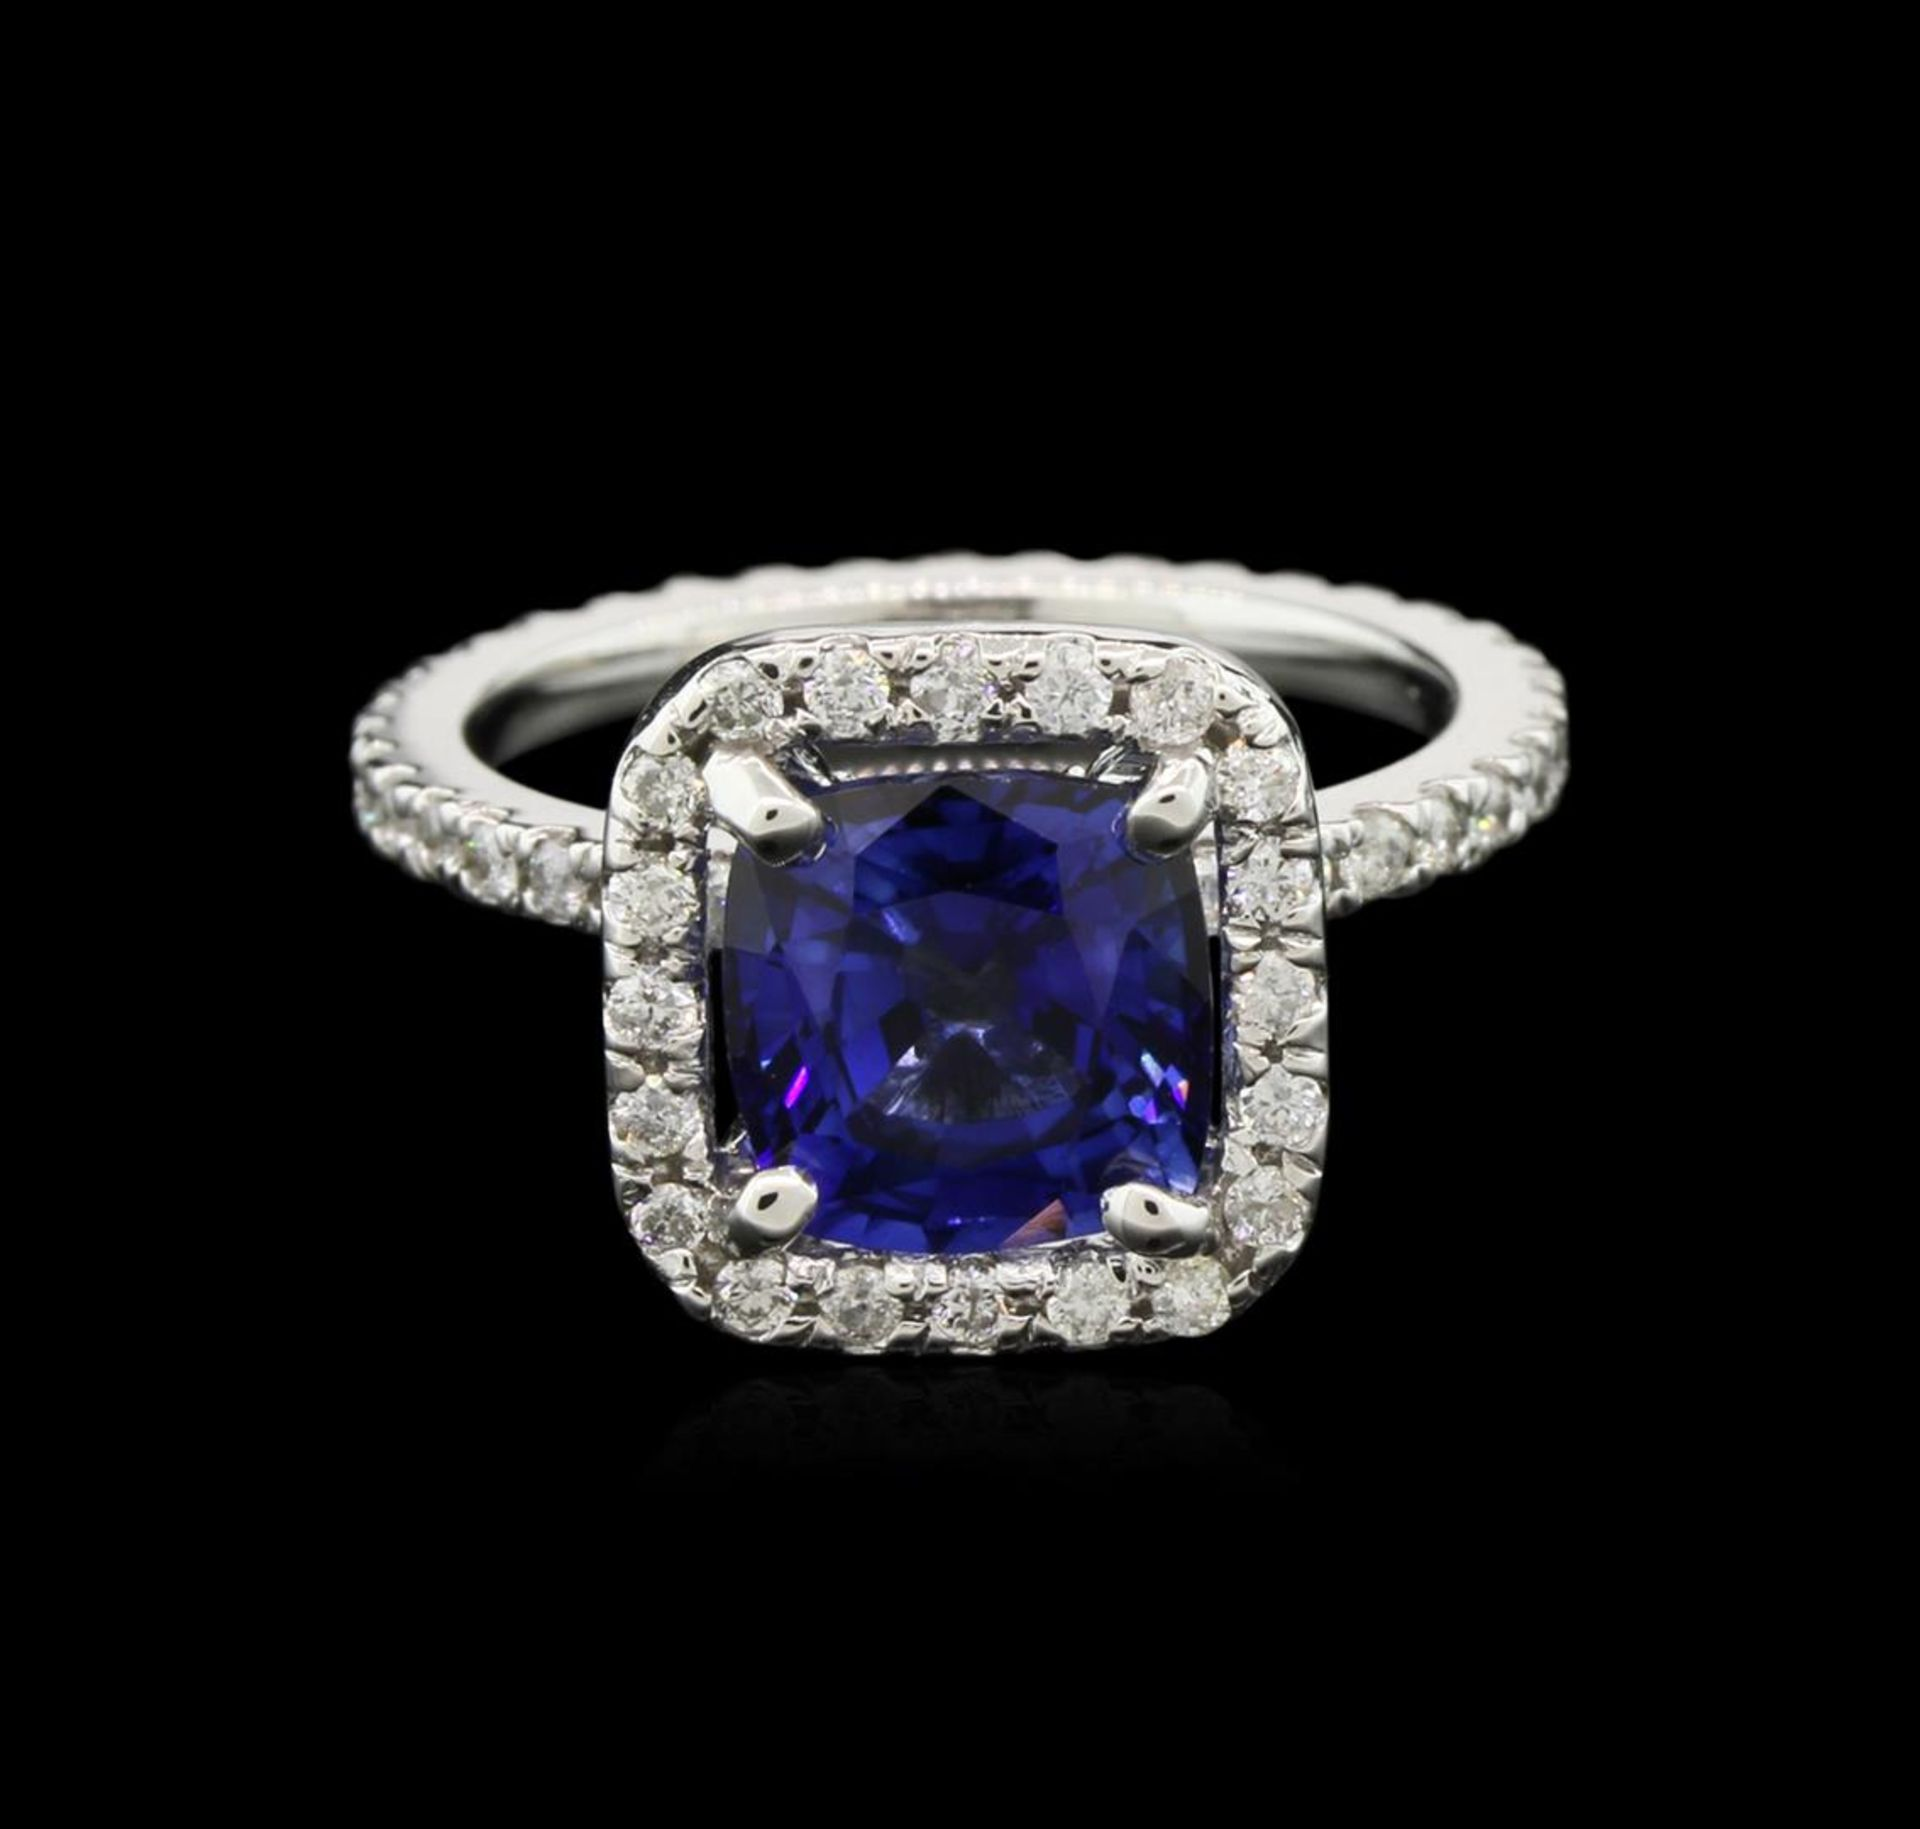 2.80 ctw Blue Sapphire and Diamond Ring - 14KT White Gold - Image 2 of 3